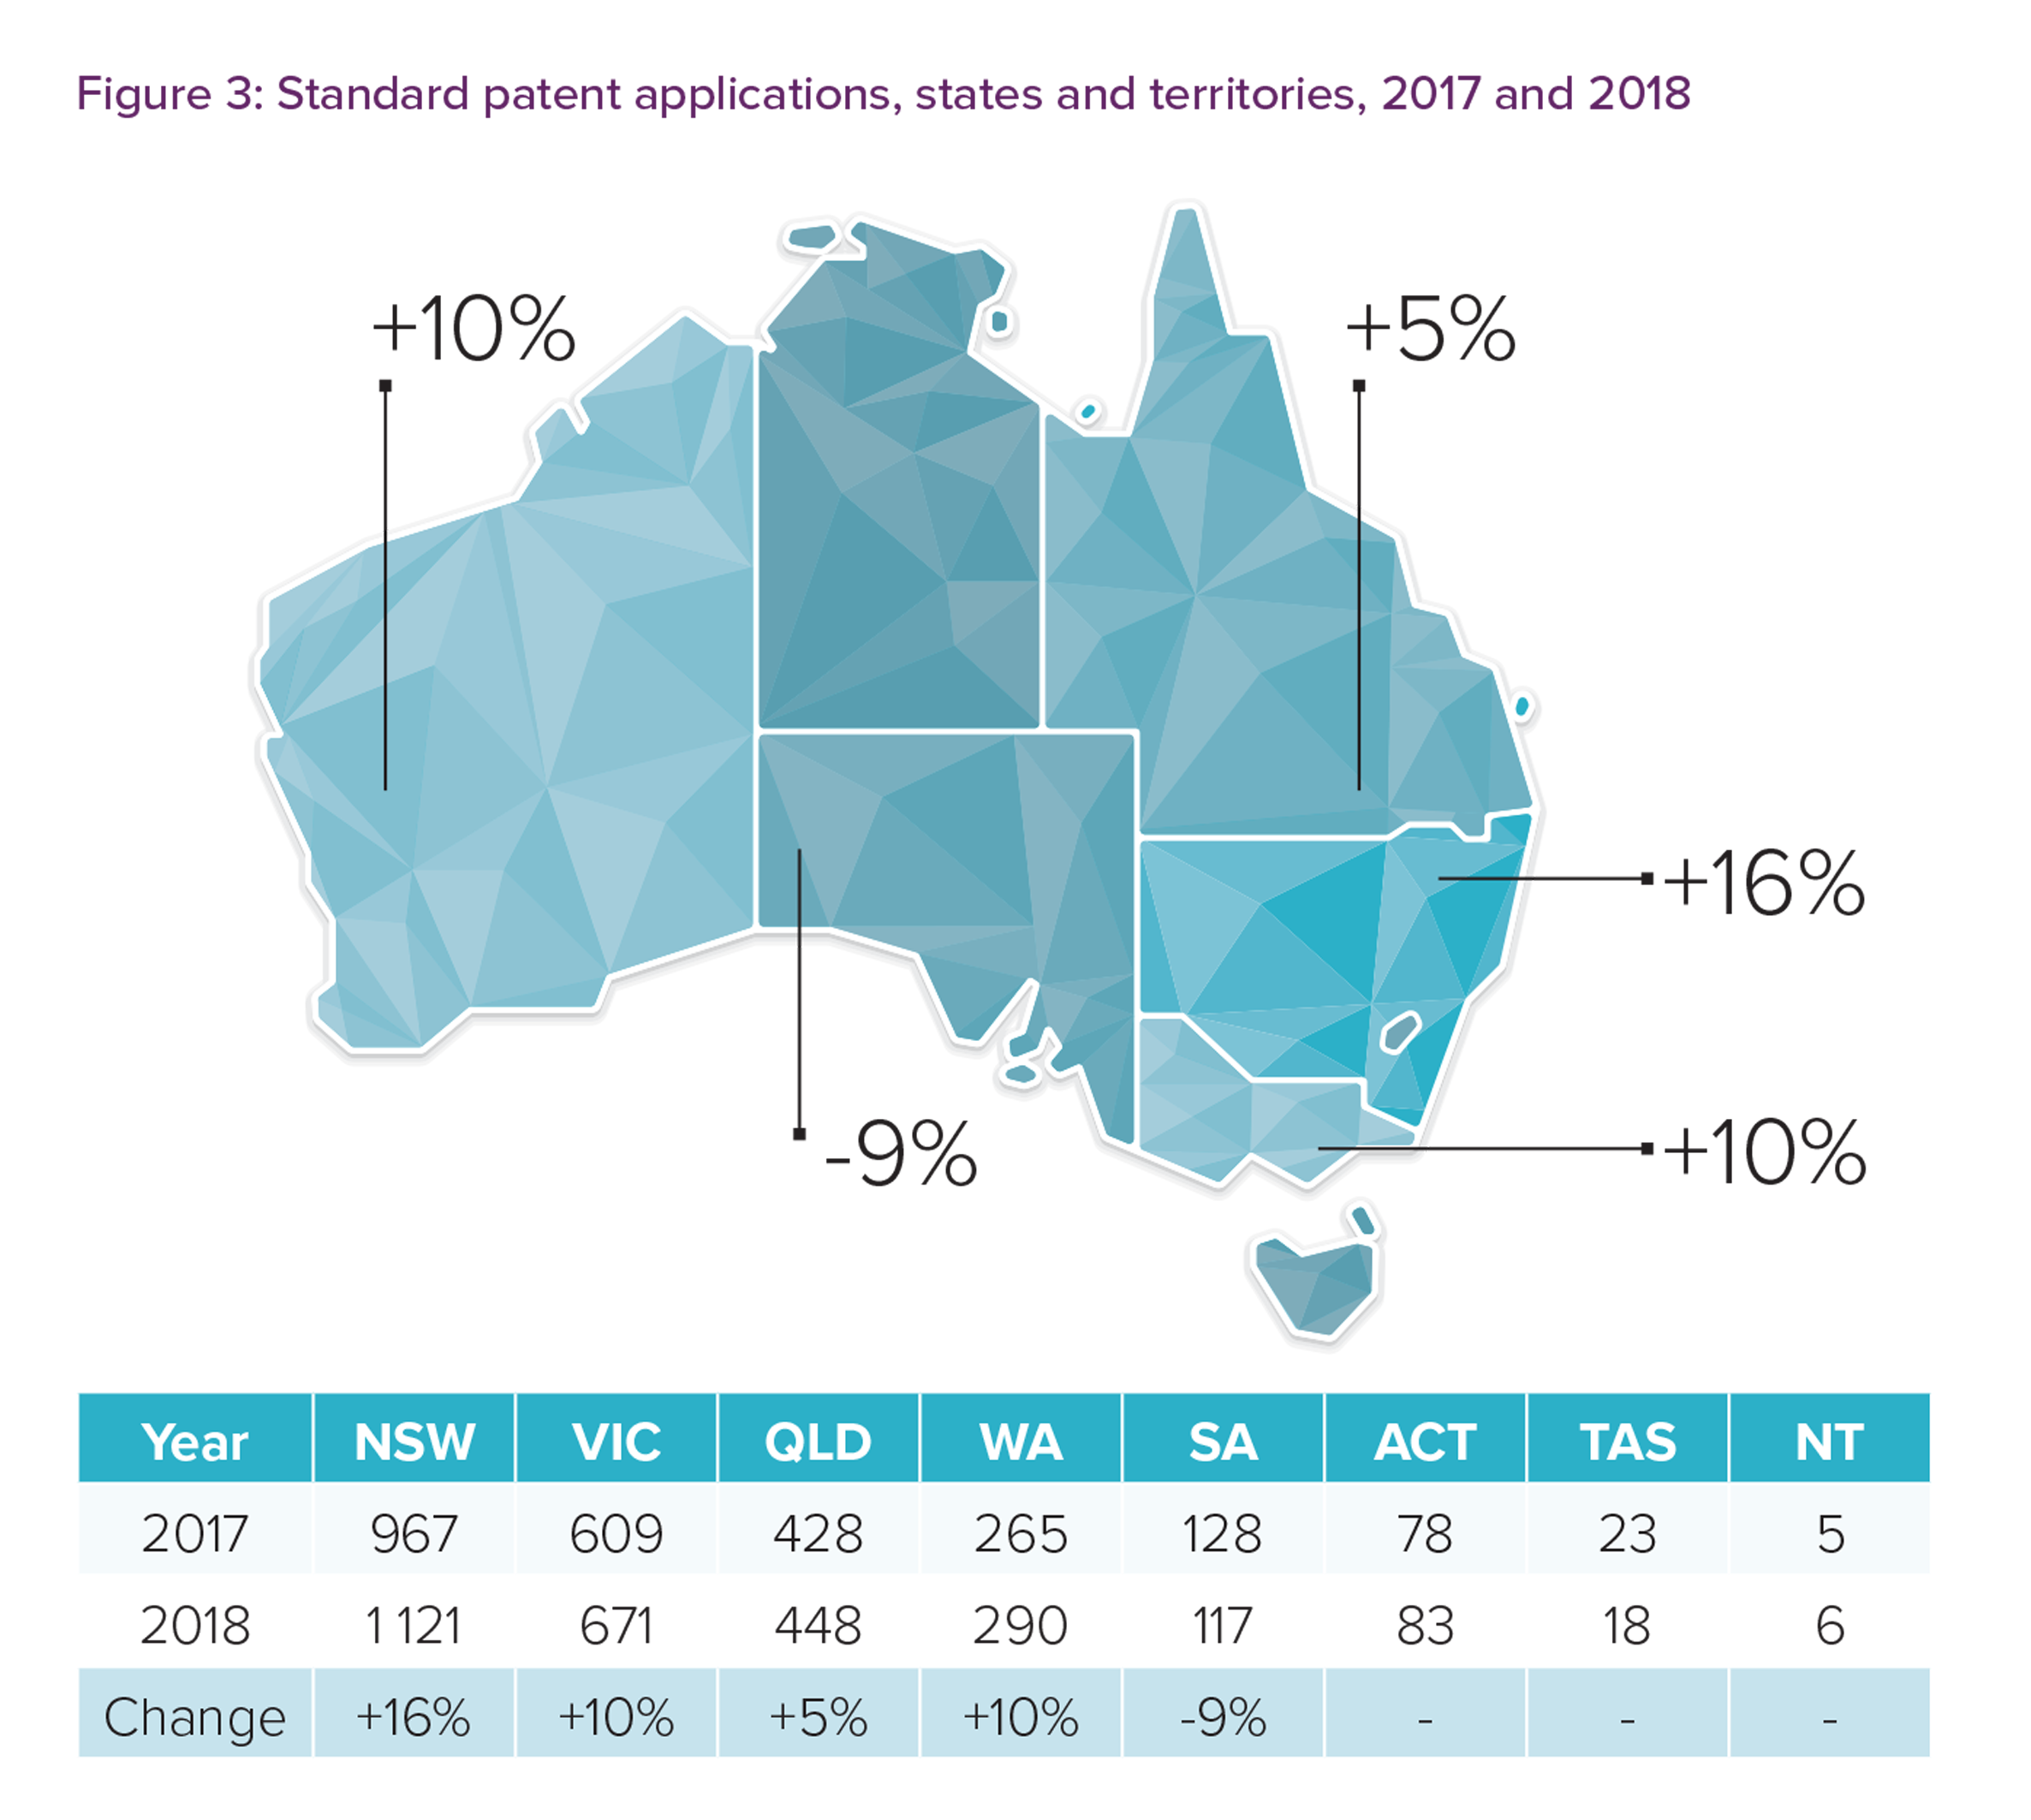 Figure 3 shows the number of patent applications from each Australian state and territory in 2017 and 2018